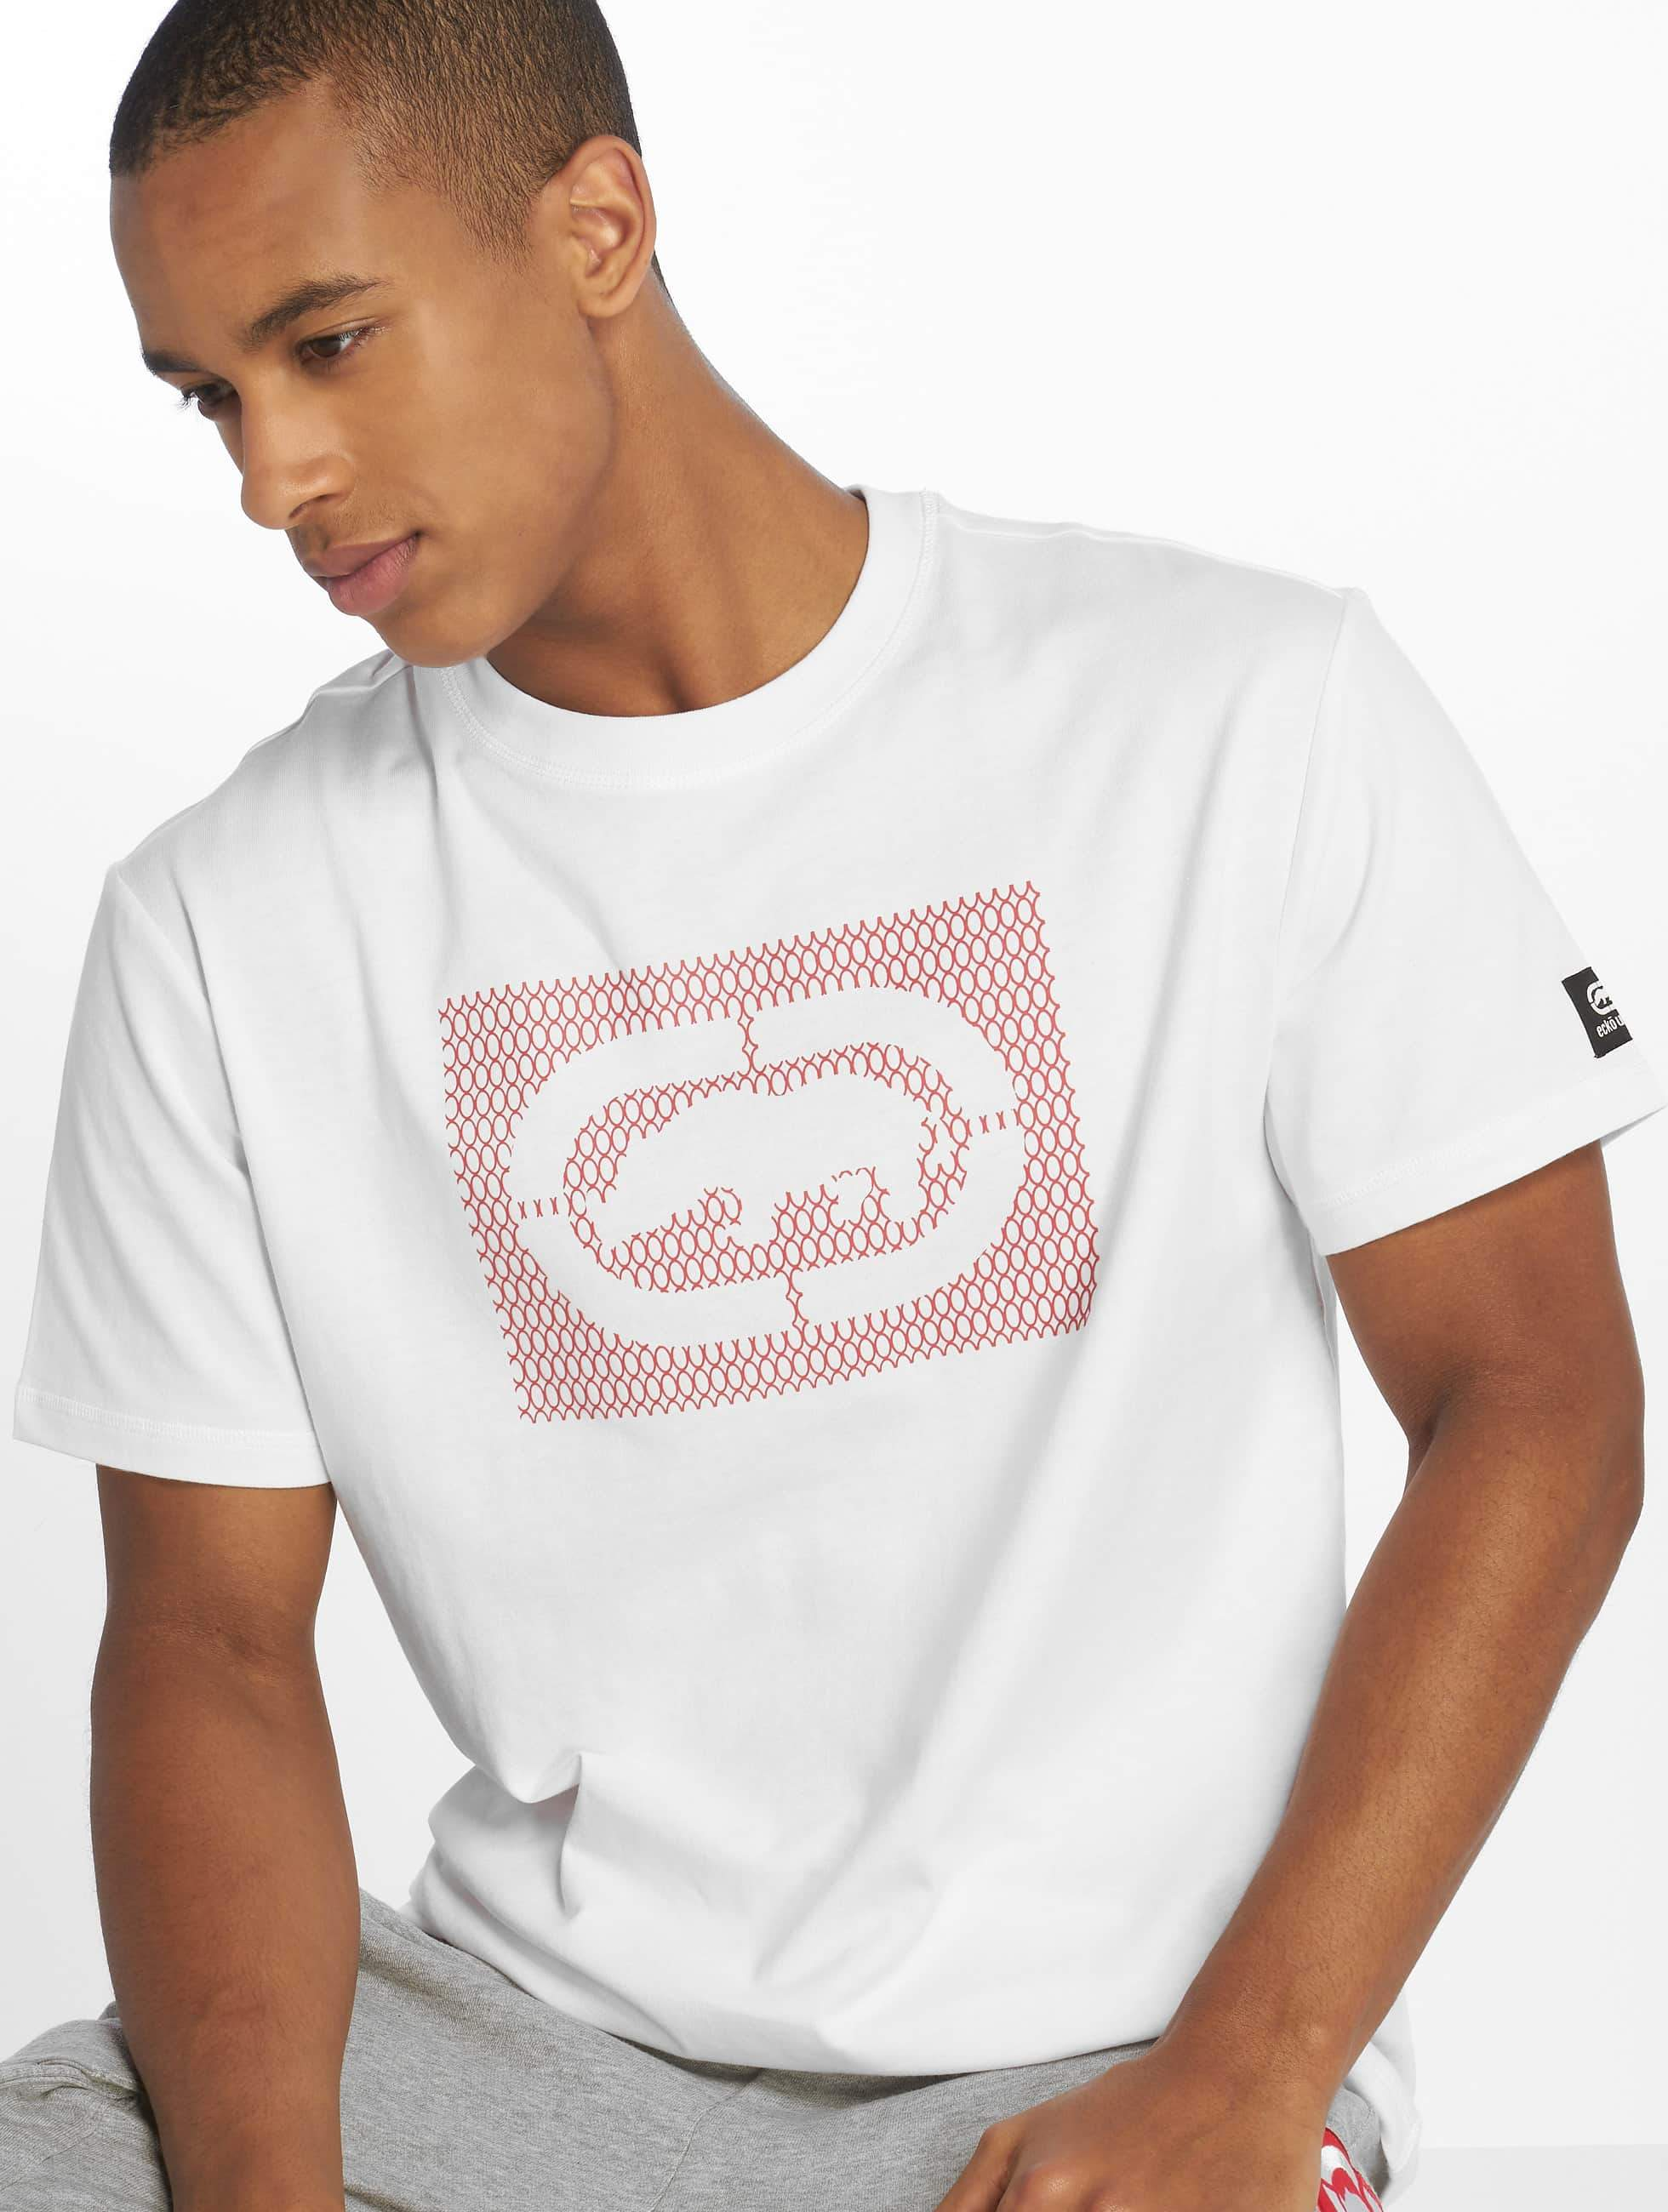 Ecko Unltd. / T-Shirt Lego and Rhino in white M